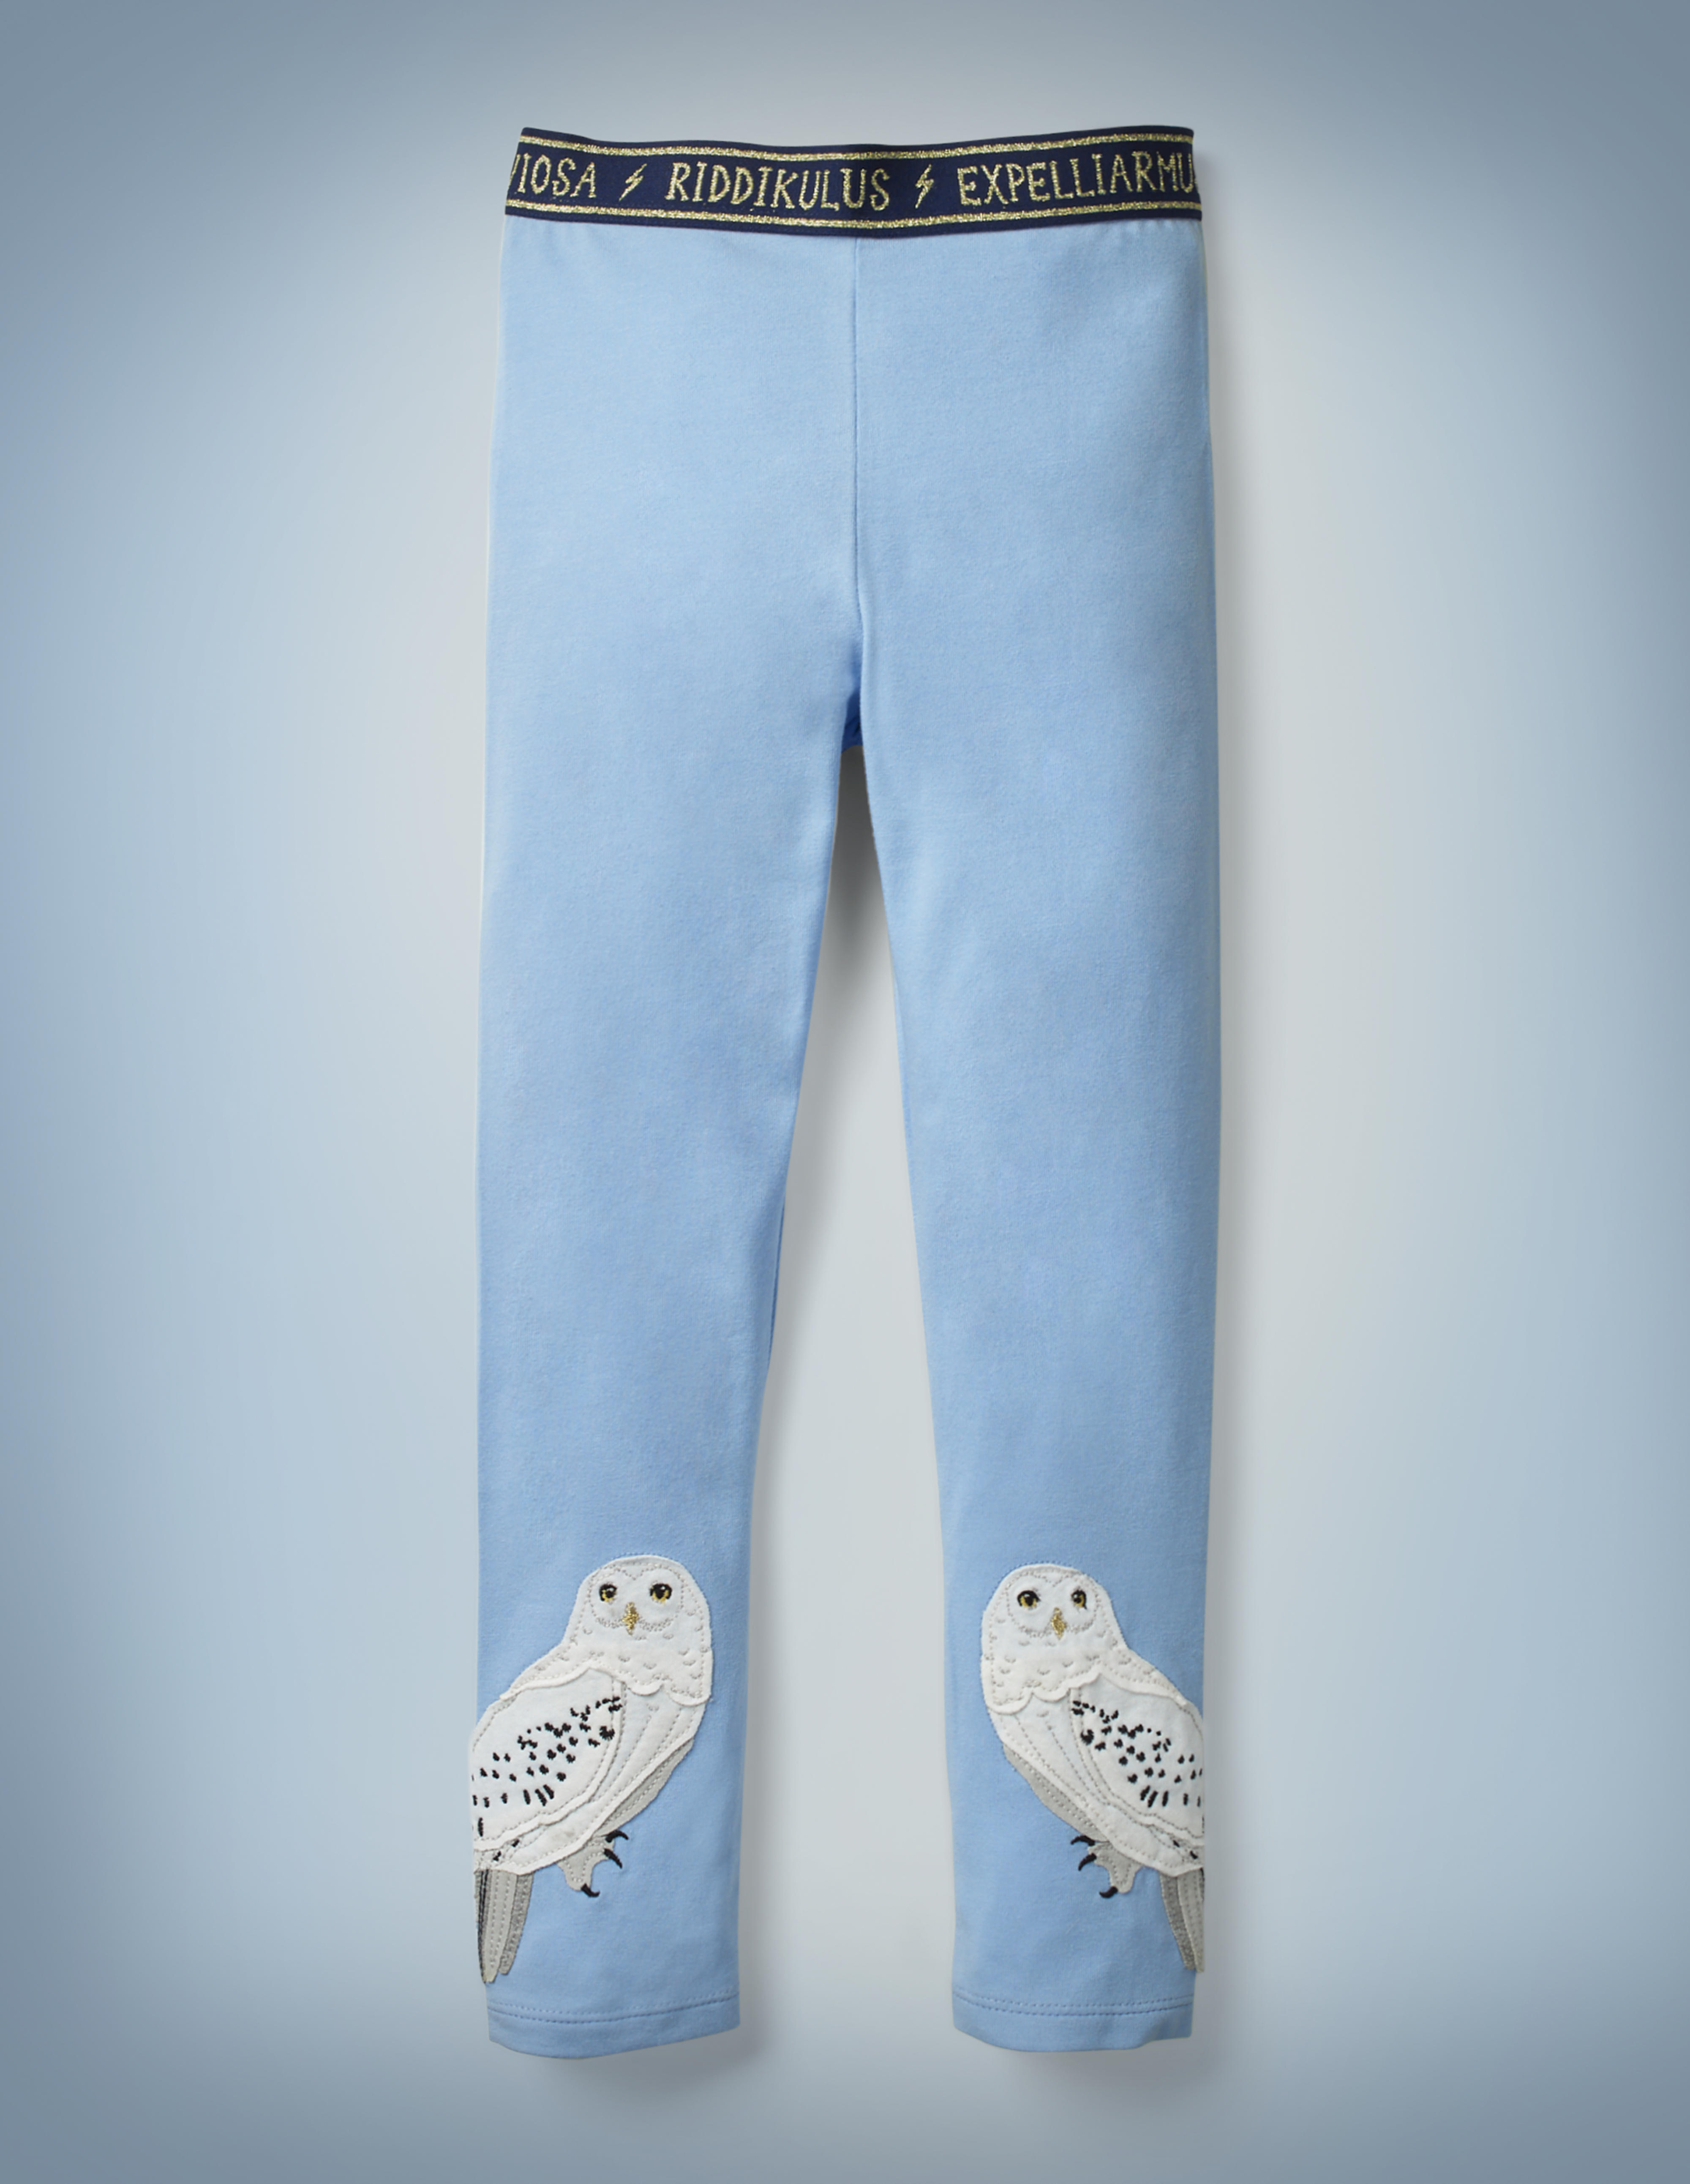 """The Mini Boden Hedwig Appliqué Leggings in light blue feature appliqué designs of Hedwig near both cuffs and a navy waistband that features spell incantations such as """"Riddikulus"""" and """"Expelliarmus"""" in gold, separated by lightning bolts. They retail for £18."""